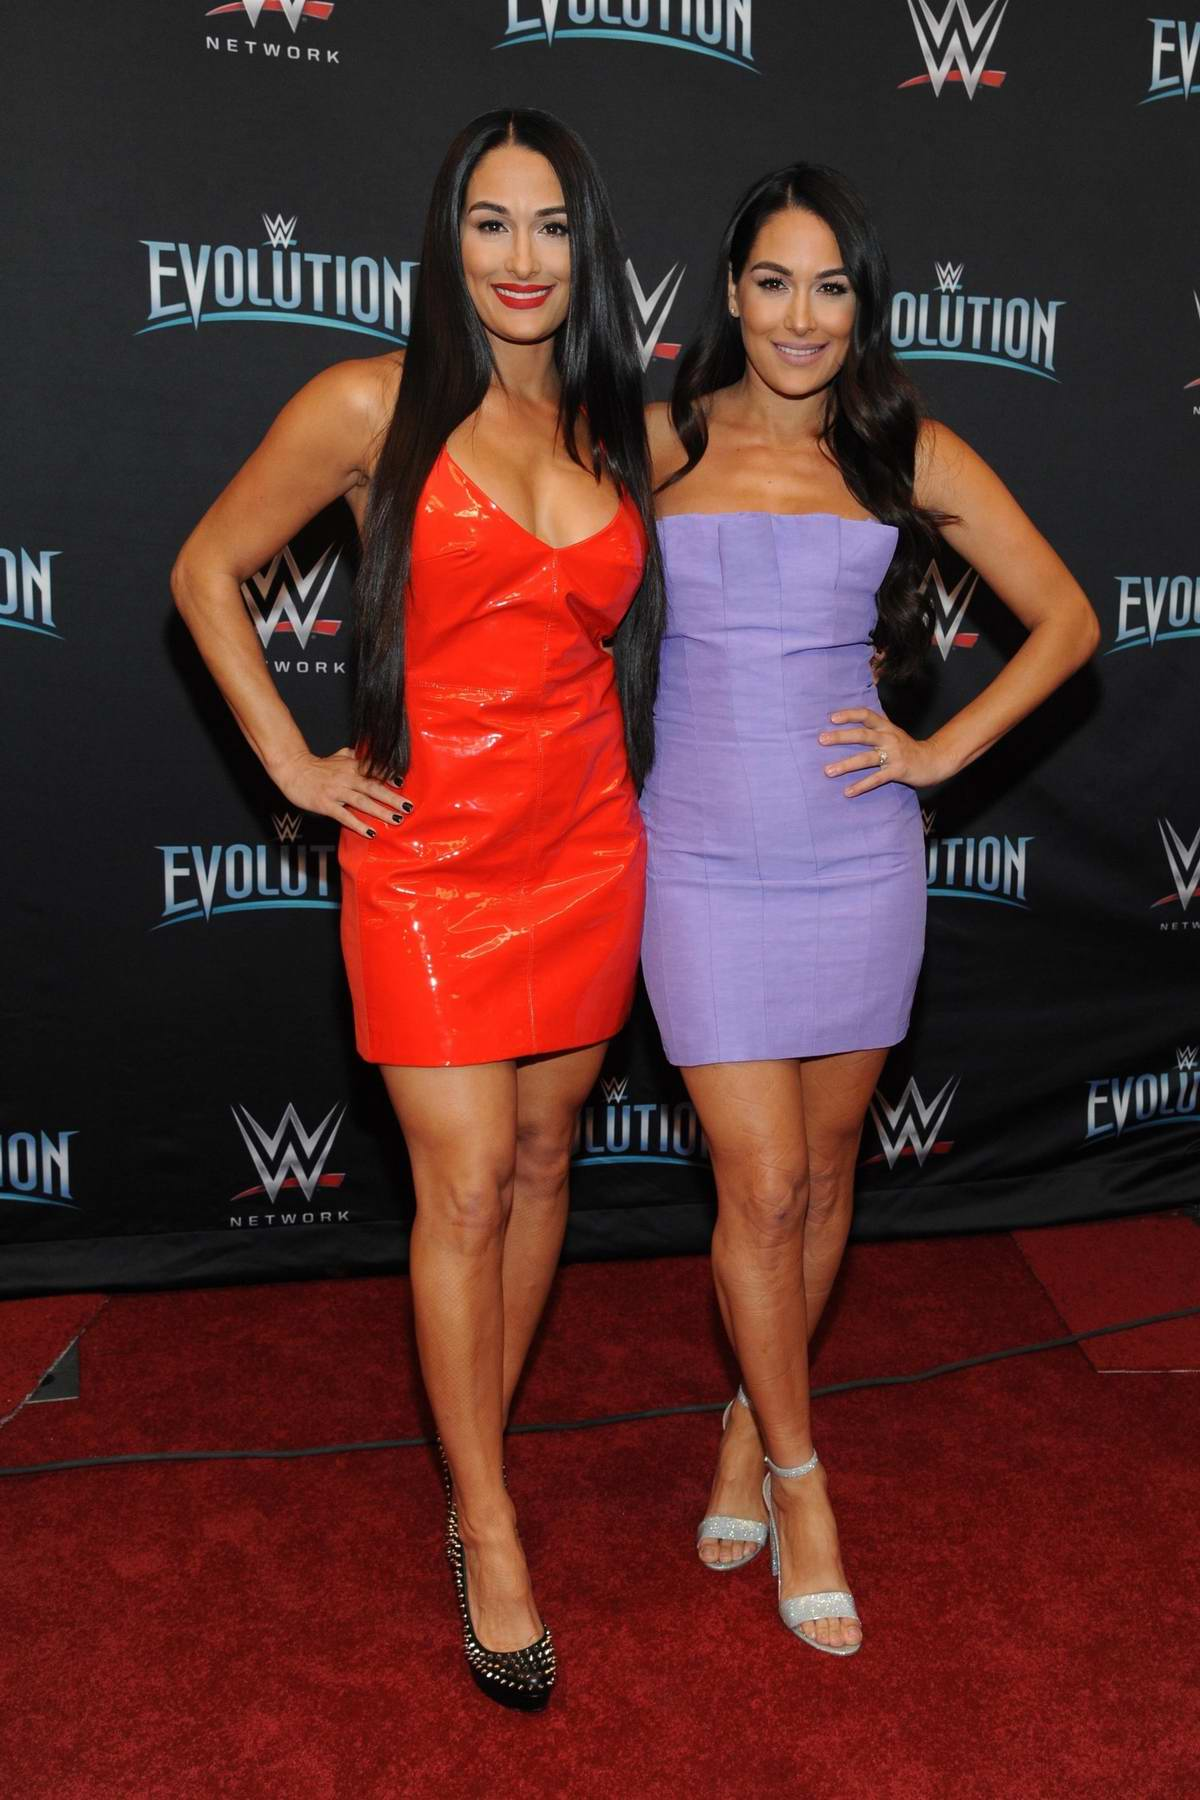 Nikki and Brie Bella attends the WWE's first ever all-women's event 'Evolution' red carpet at the Nassau Veteran's Memorial Coliseum in Uniondale, New York